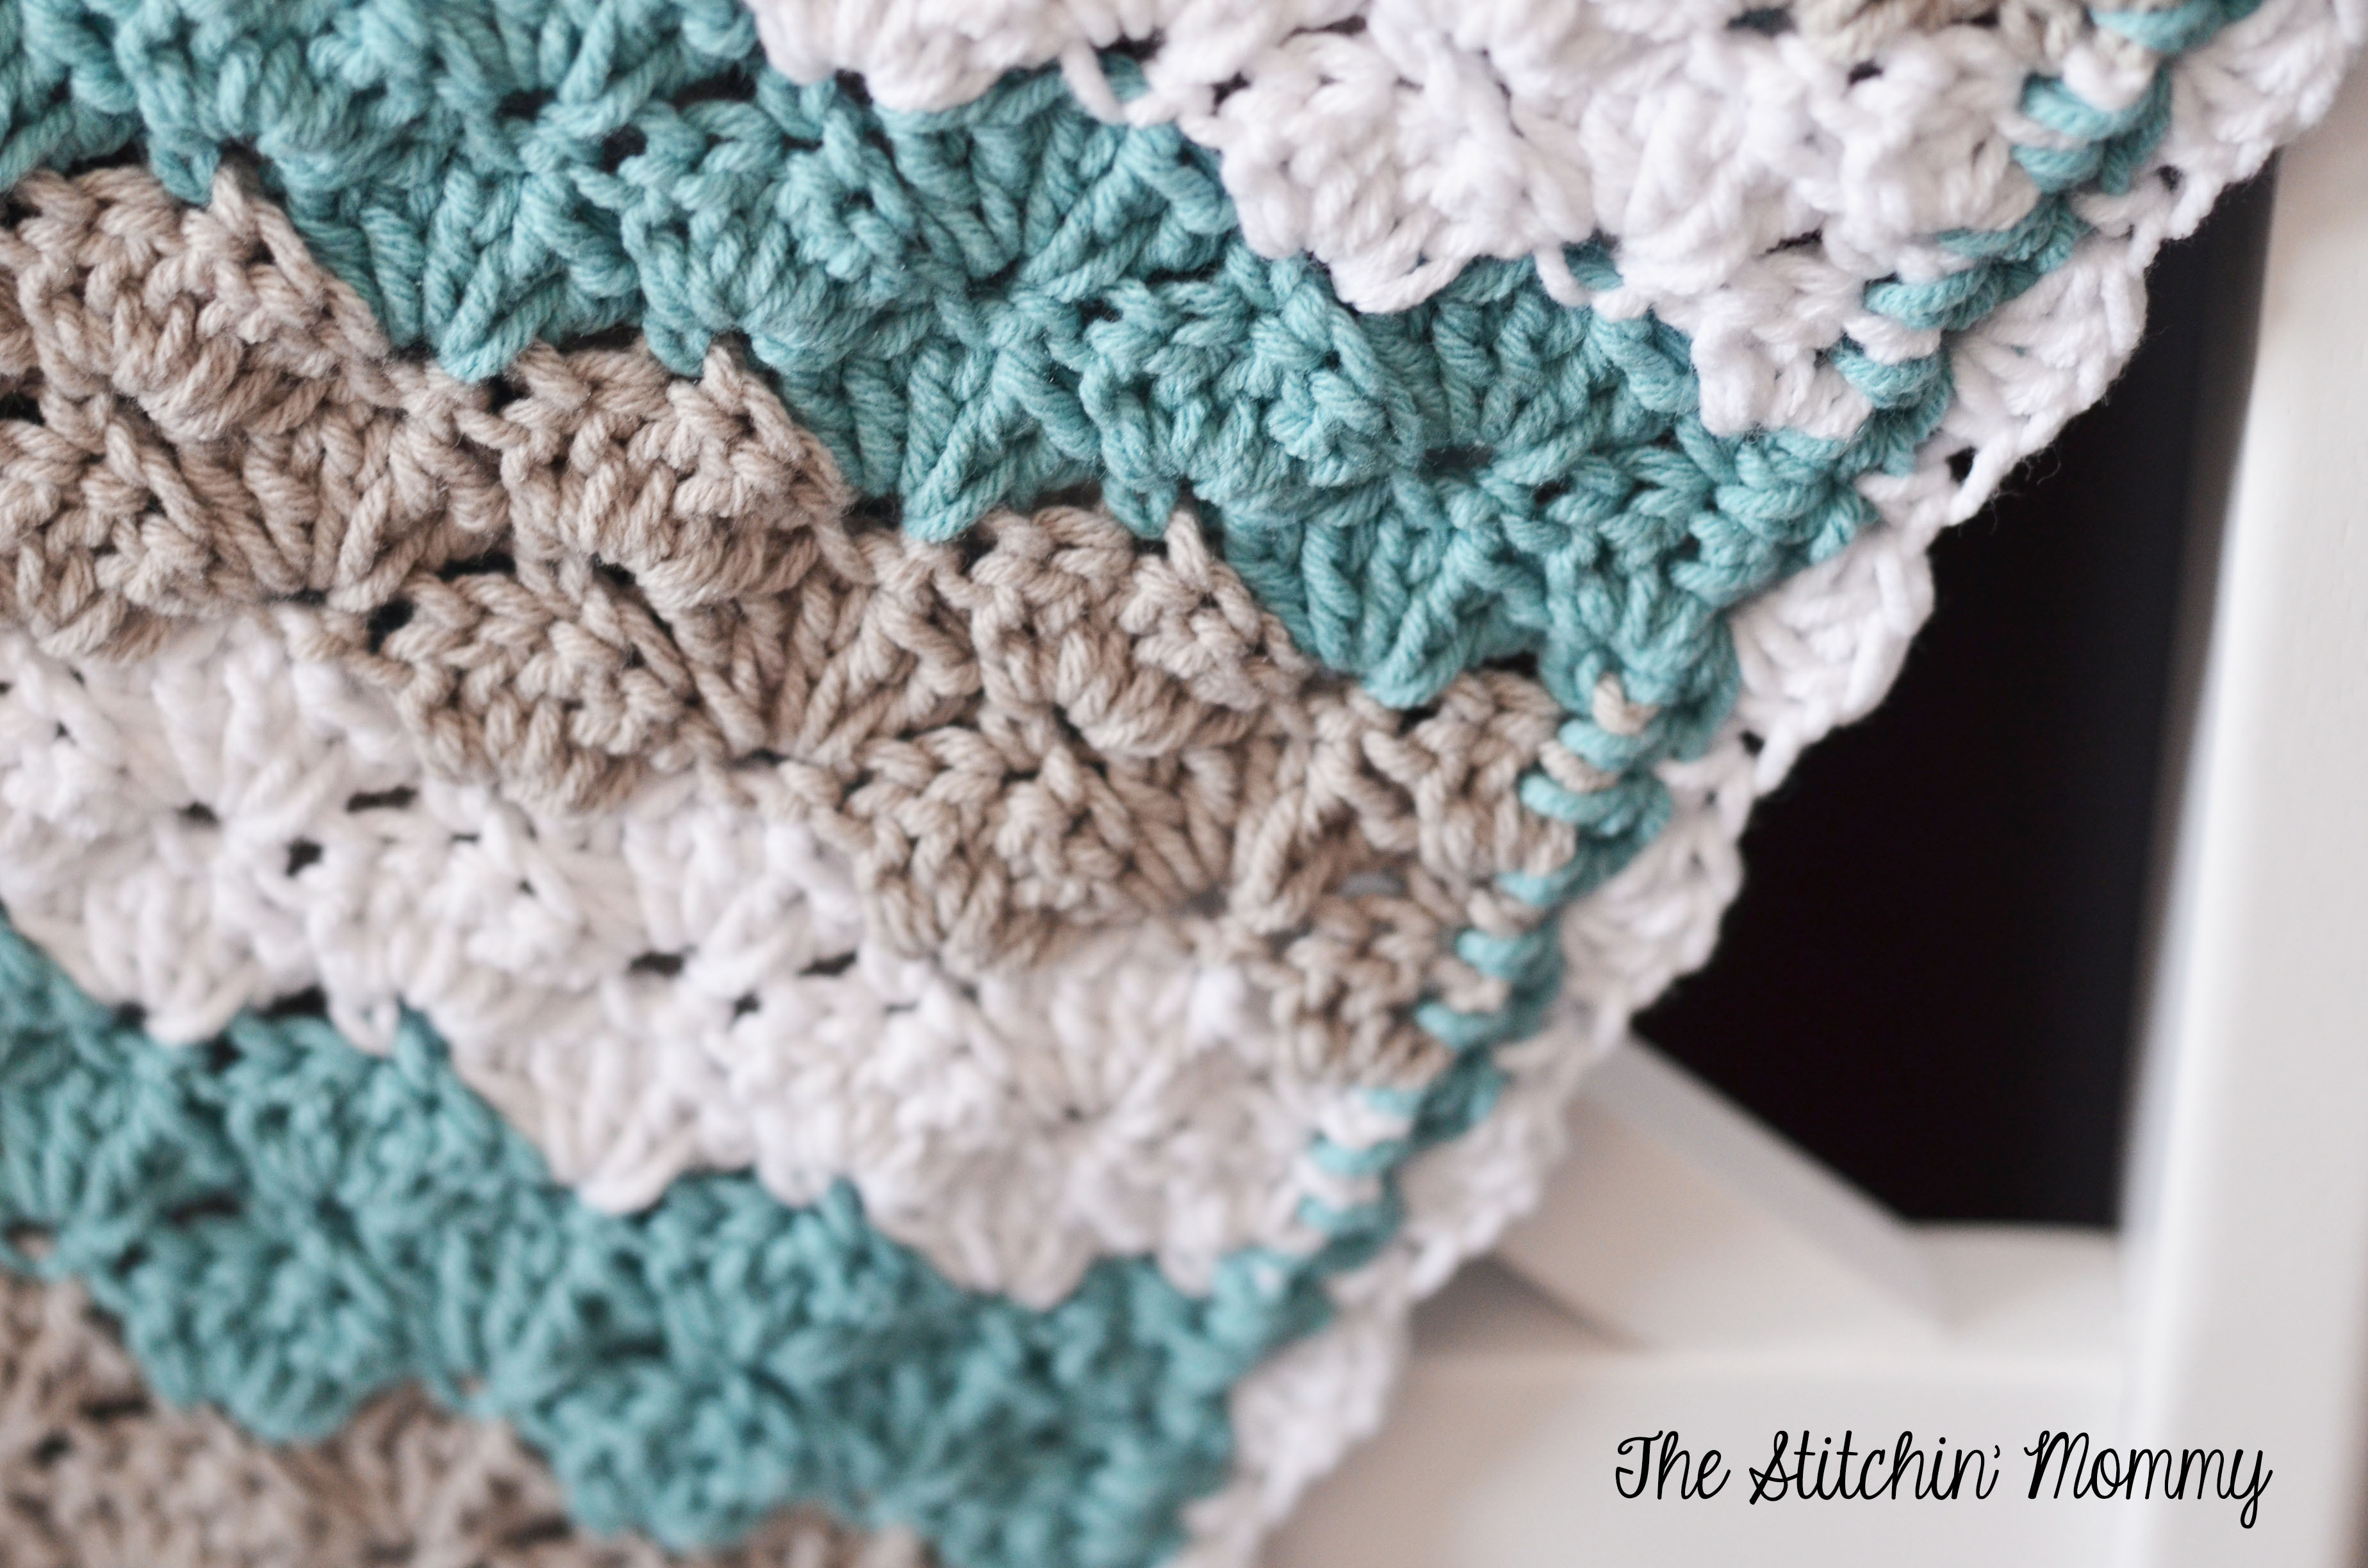 Crochet Stitches for Baby Blankets Inspirational Shell Stitch Baby Blanket Free Pattern Of Amazing 45 Pics Crochet Stitches for Baby Blankets